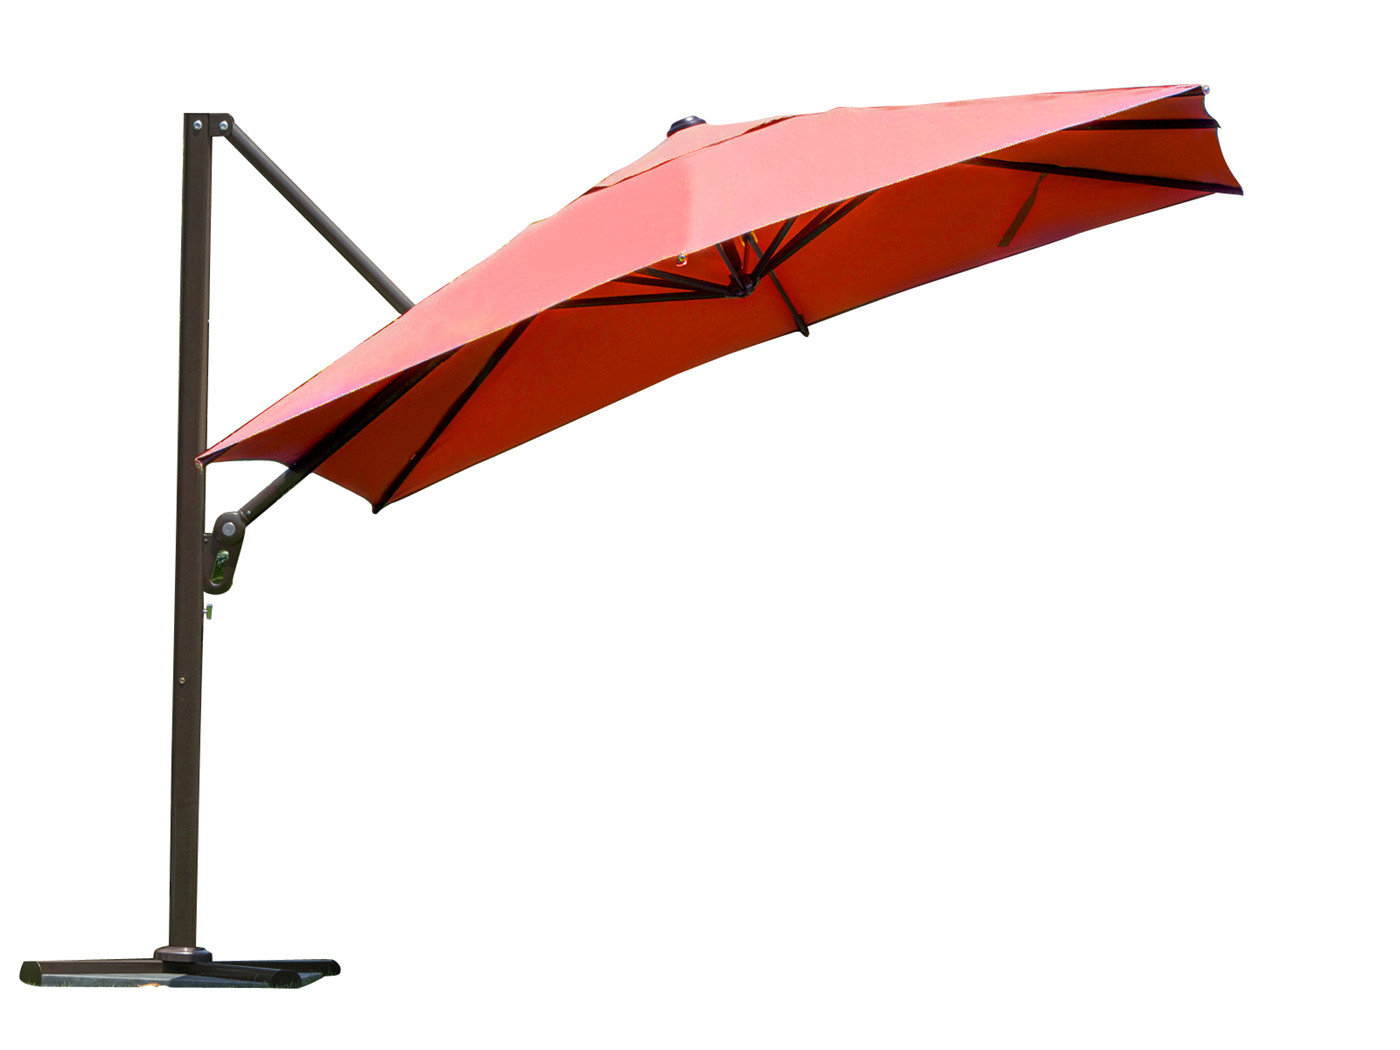 Most Current 9' Square Cantilever Umbrella In Lytham Cantilever Umbrellas (Gallery 17 of 20)